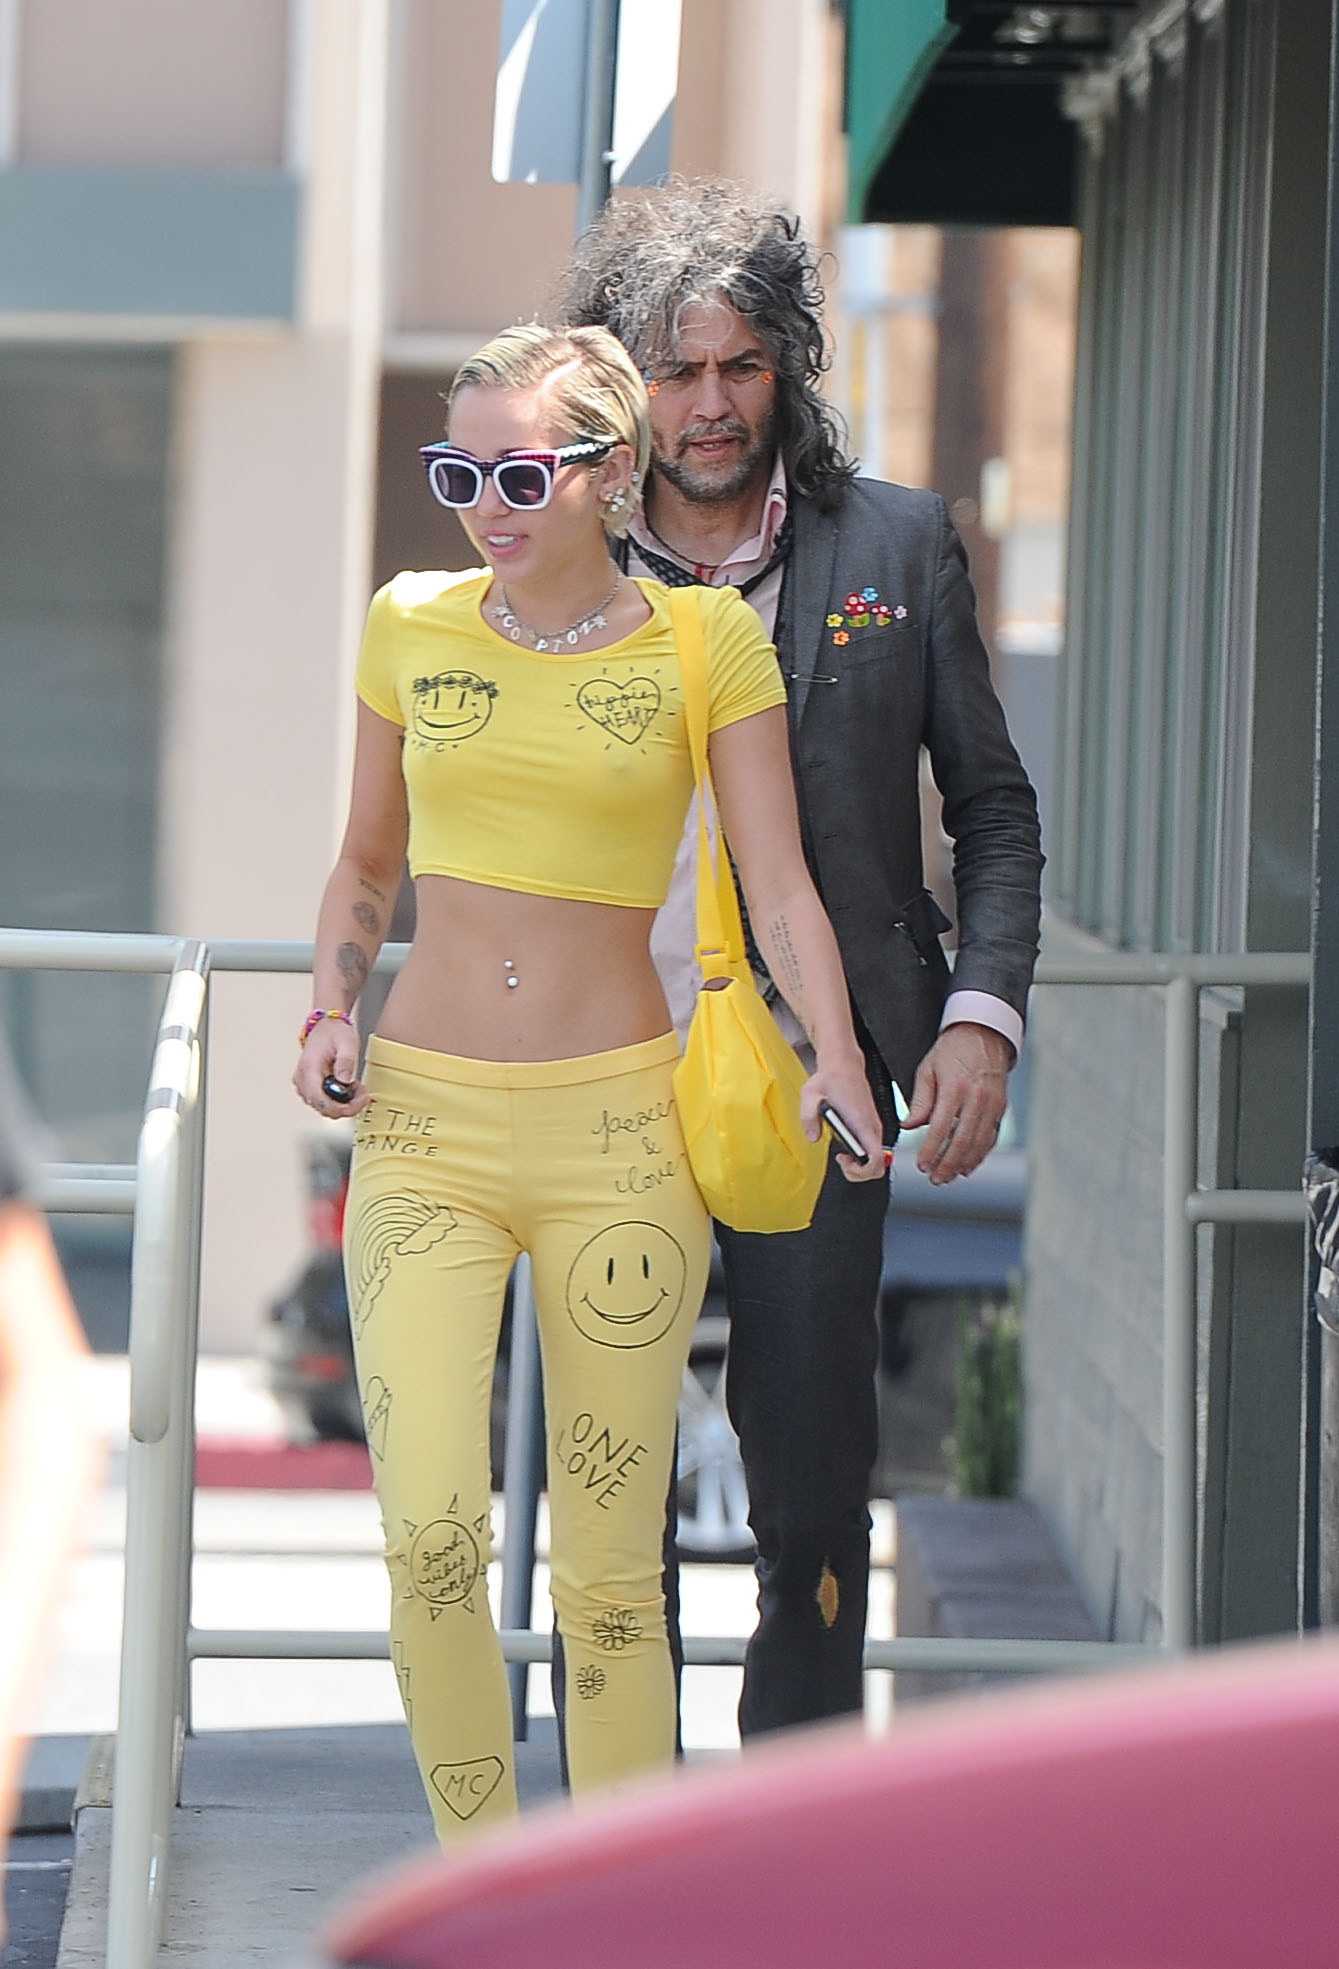 Miley Cyrus See Through Top 4 Celebrity Slips Com